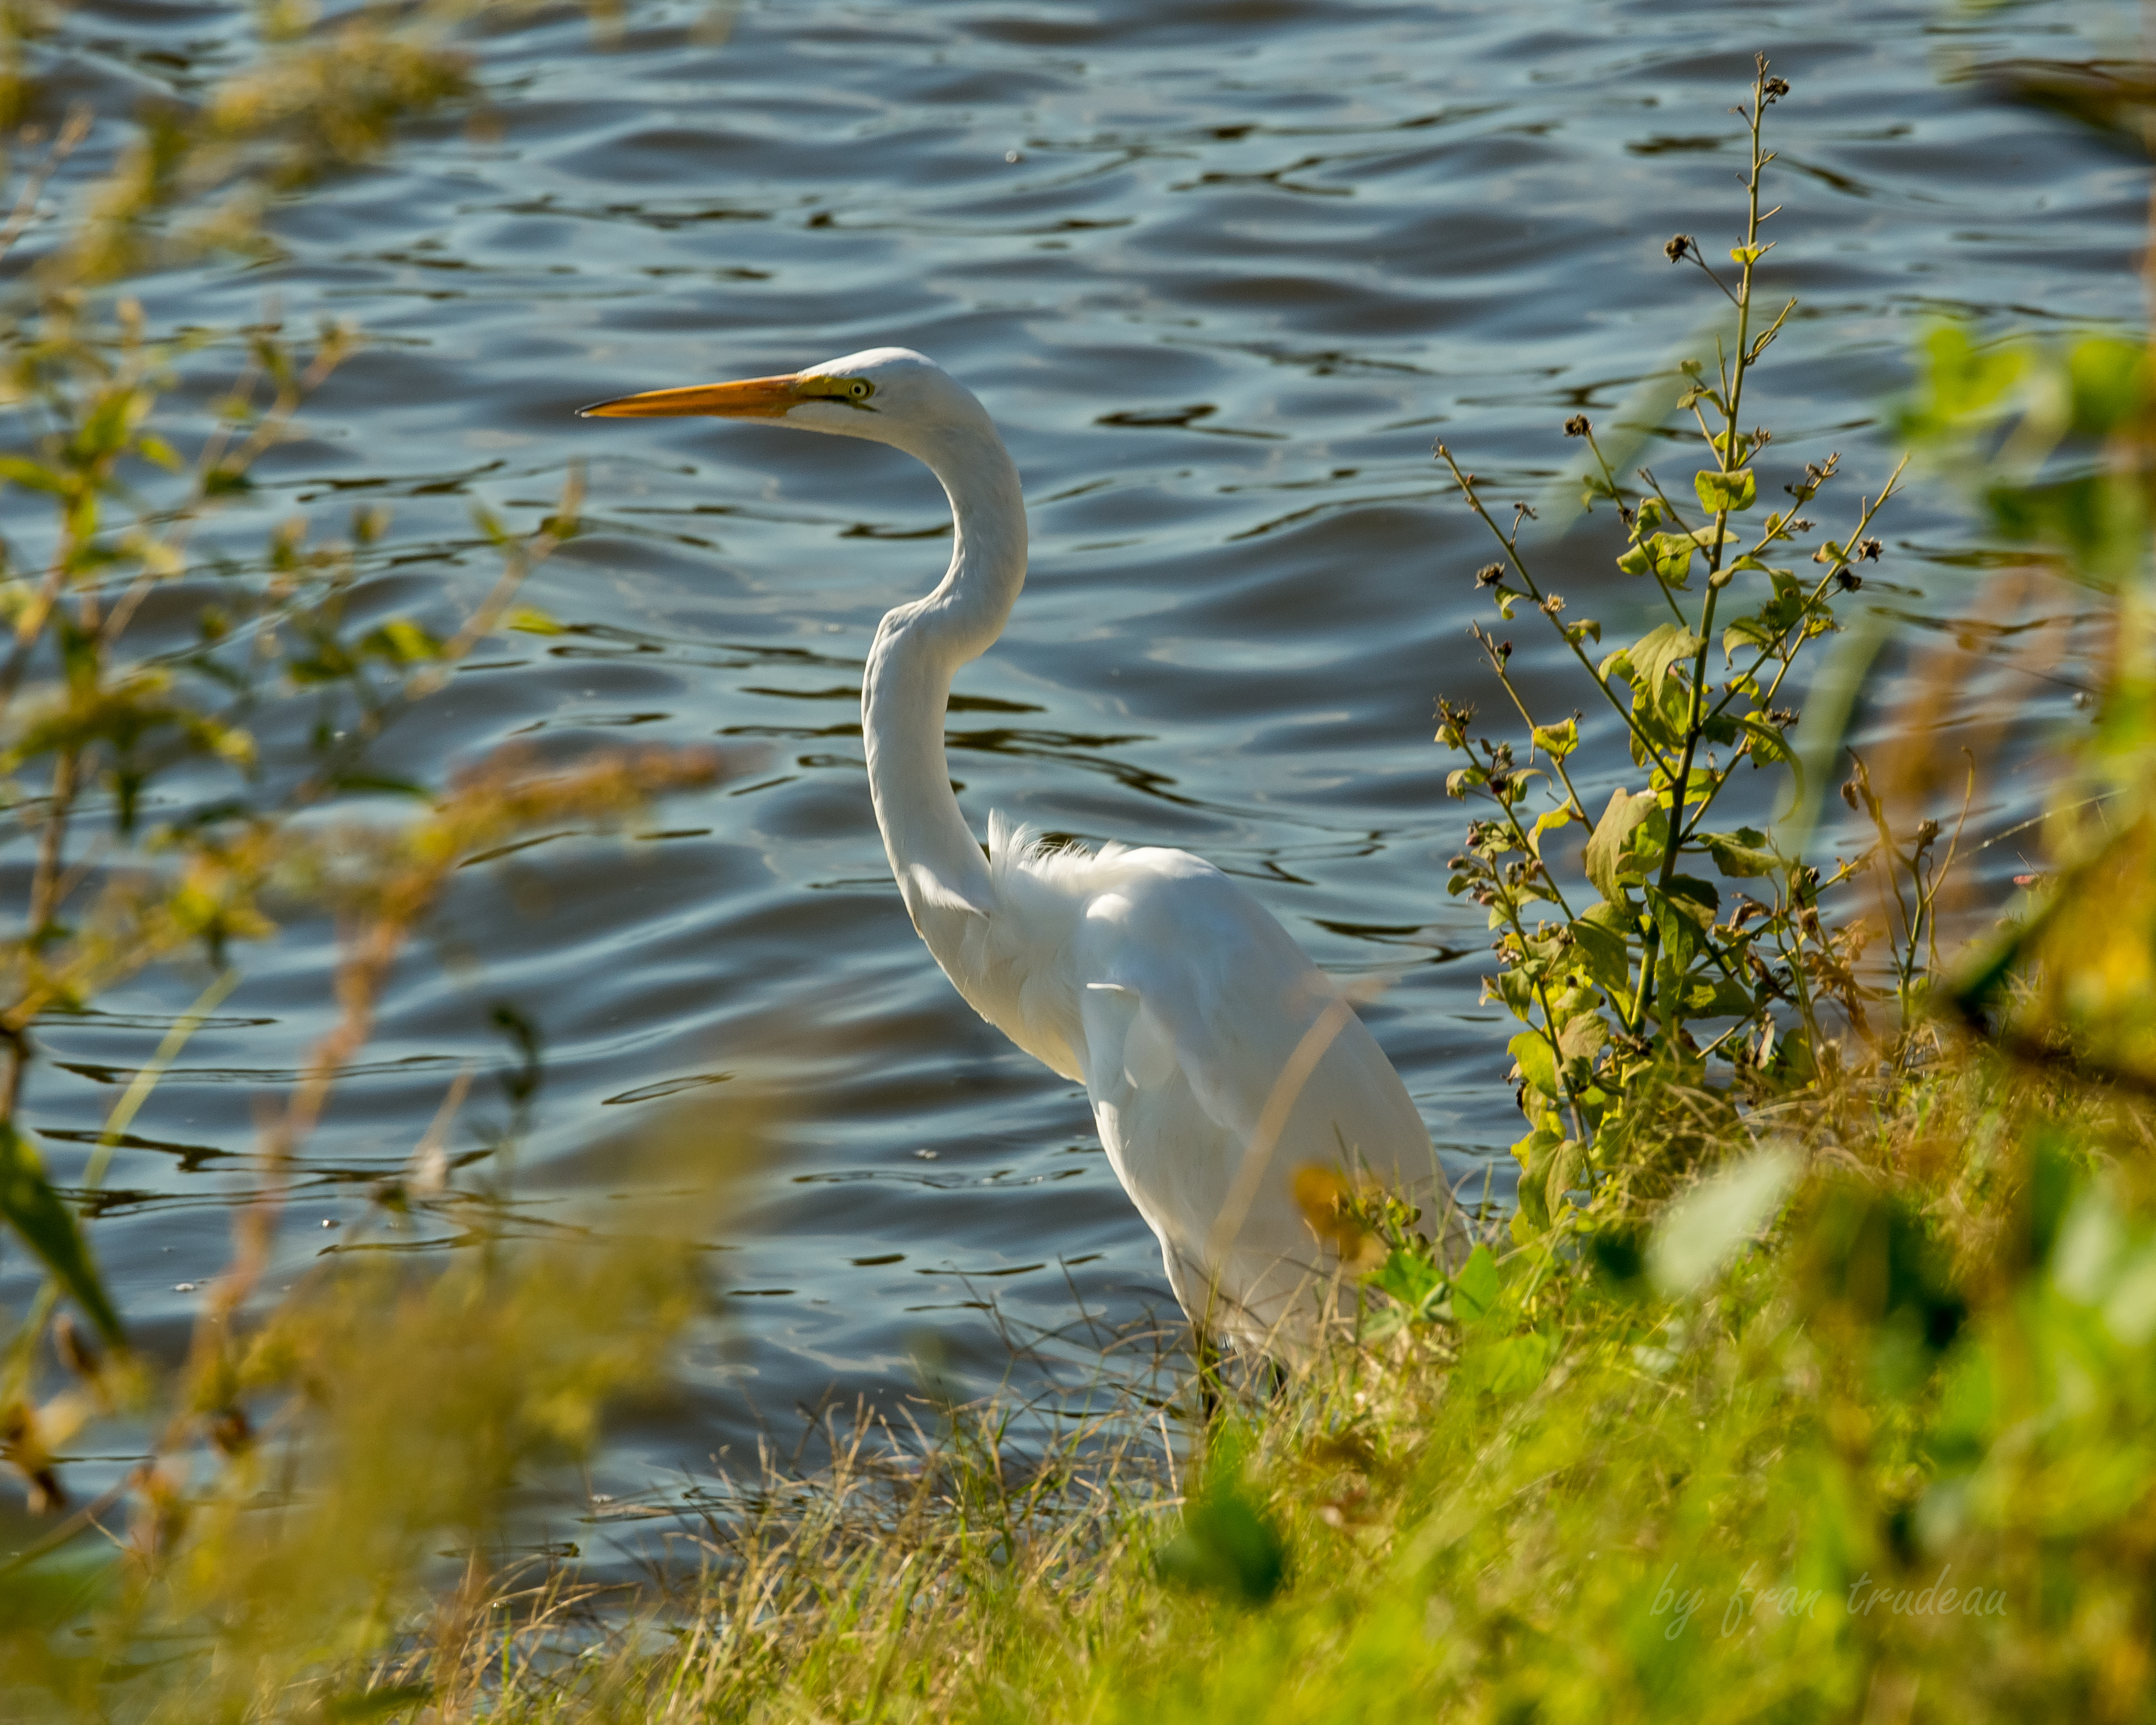 65307 download wallpaper Animals, Heron, Bird, Wildlife screensavers and pictures for free